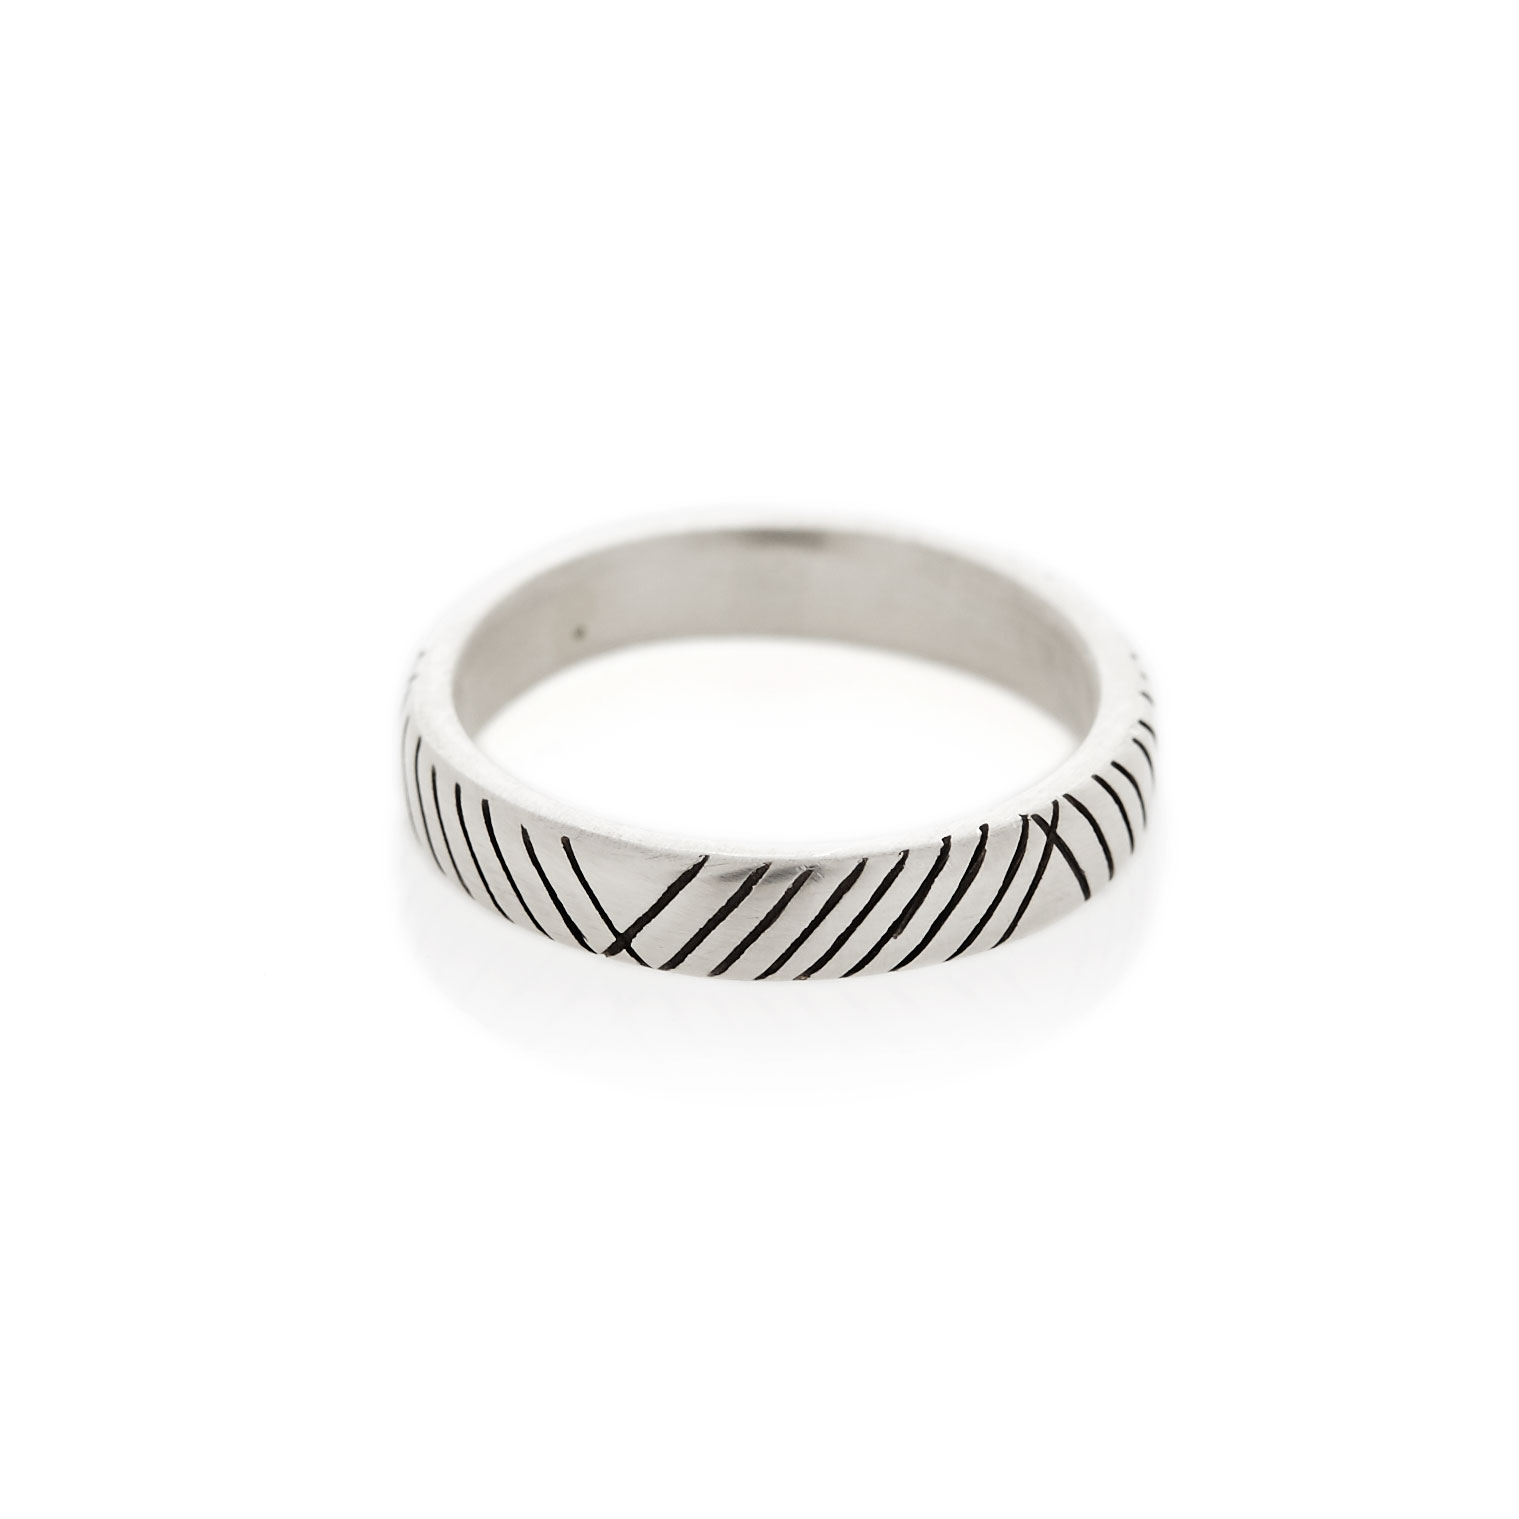 A 3.5 mm square profile men's band with diagonal hand-etched detail. Available in sterling silver, 9ct yellow gold and 9ct white gold with a brushed or polished finish.